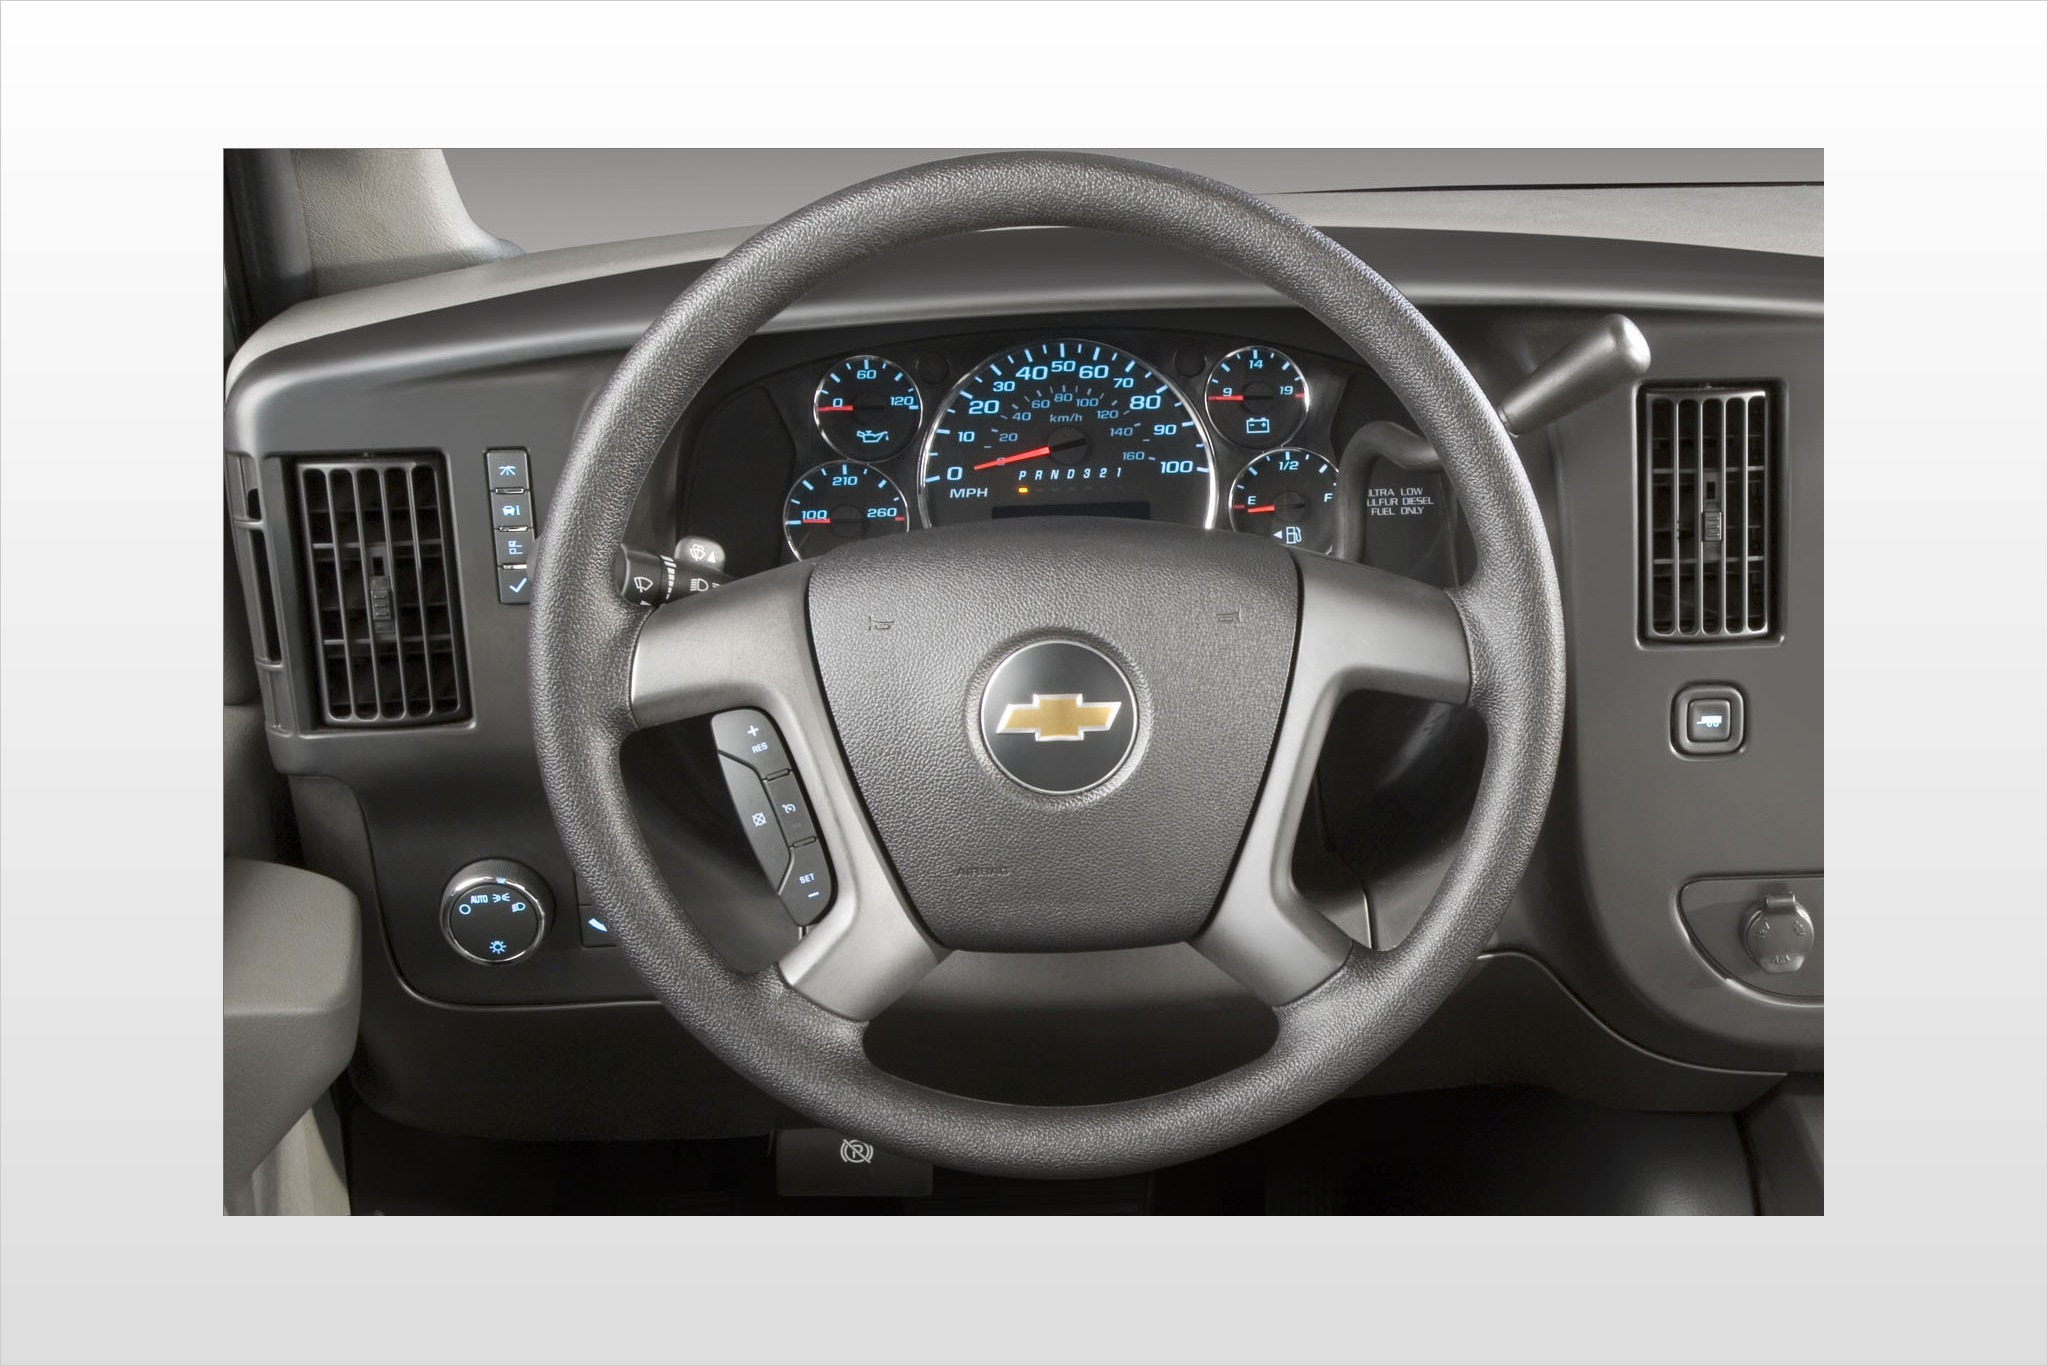 2013 Chevrolet Express LS interior #3